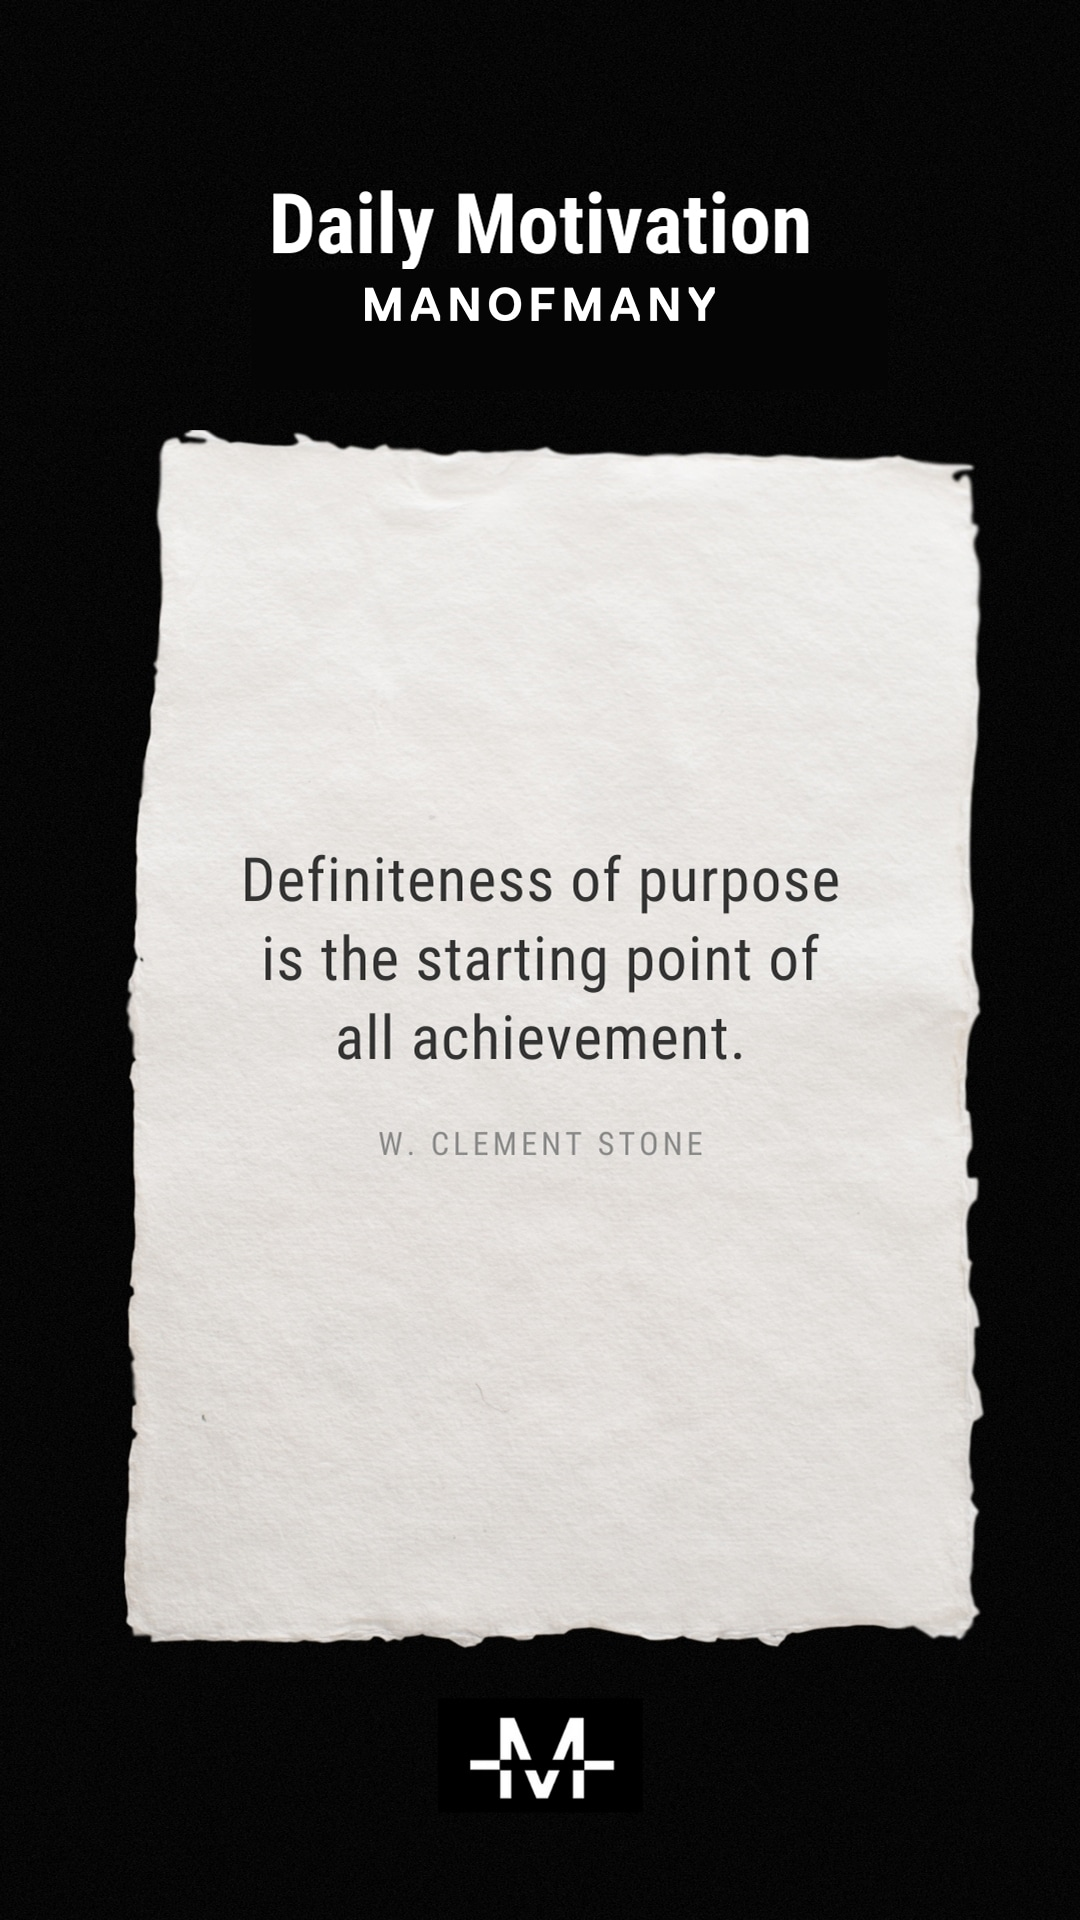 Definiteness of purpose is the starting point of all achievement. –W. Clement Stone quote